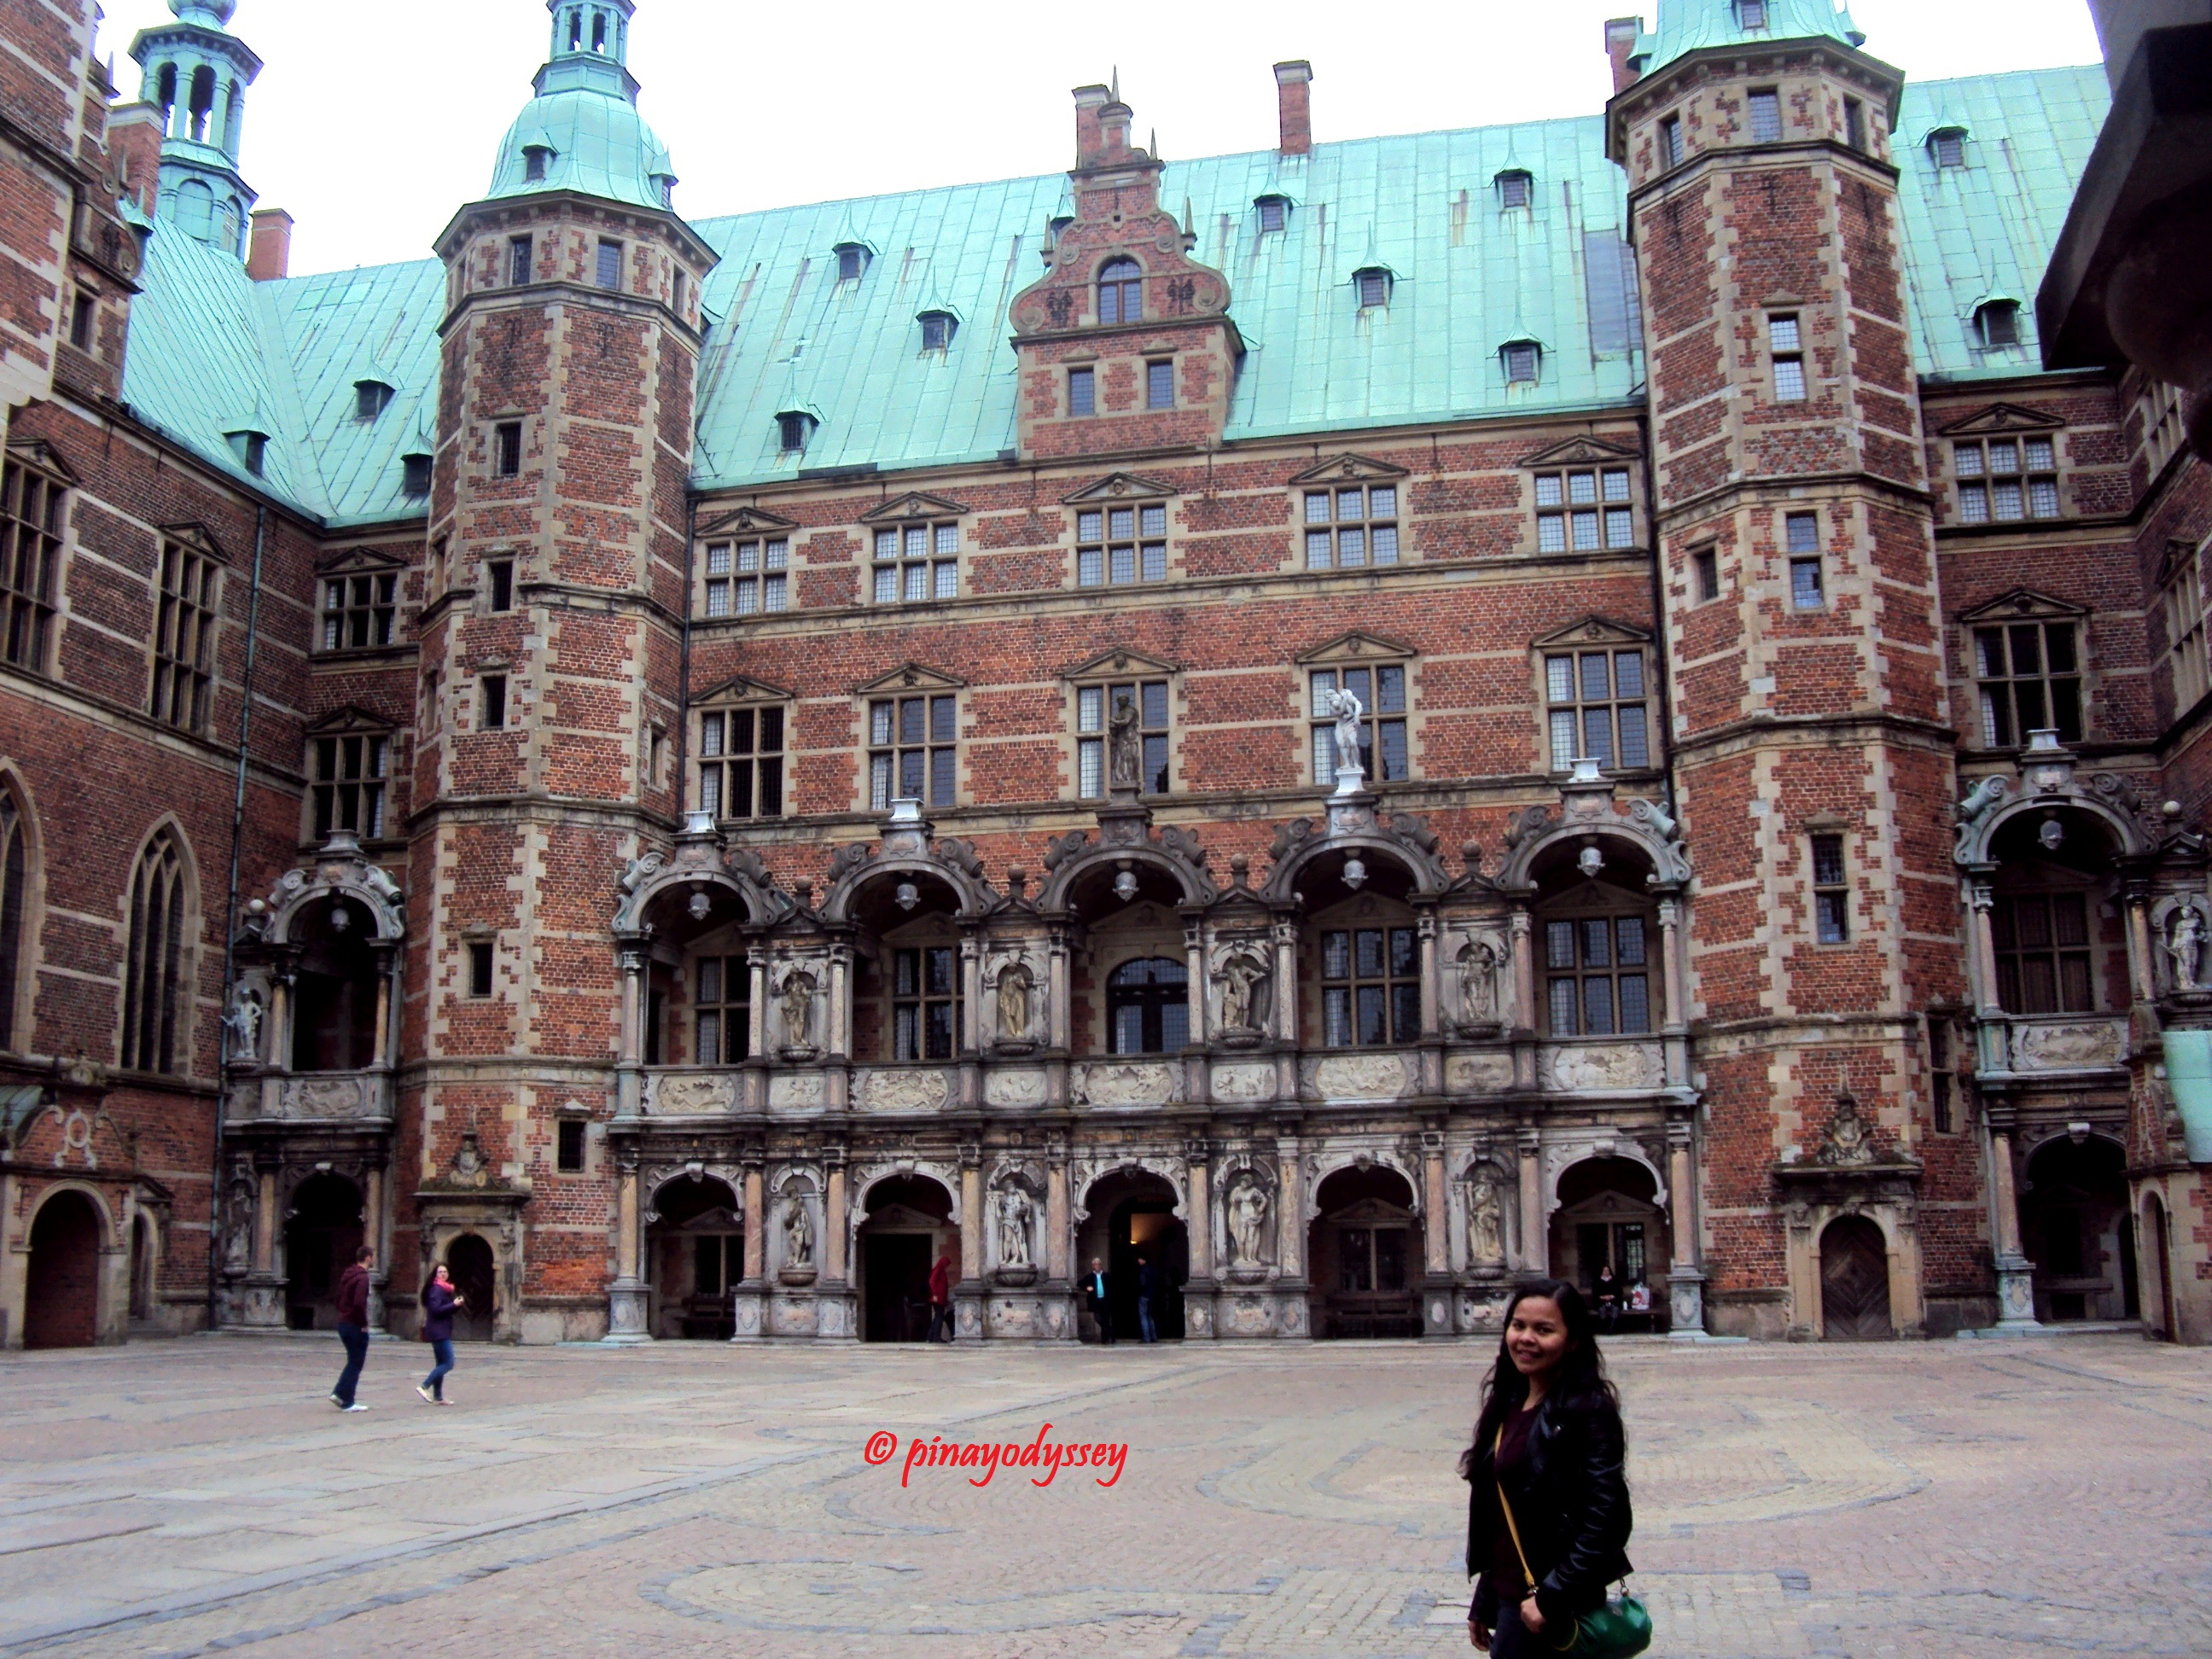 The museum of national history at frederiksborg castle copenhagen - Frederiksborg Castle Frederiksborg Castle